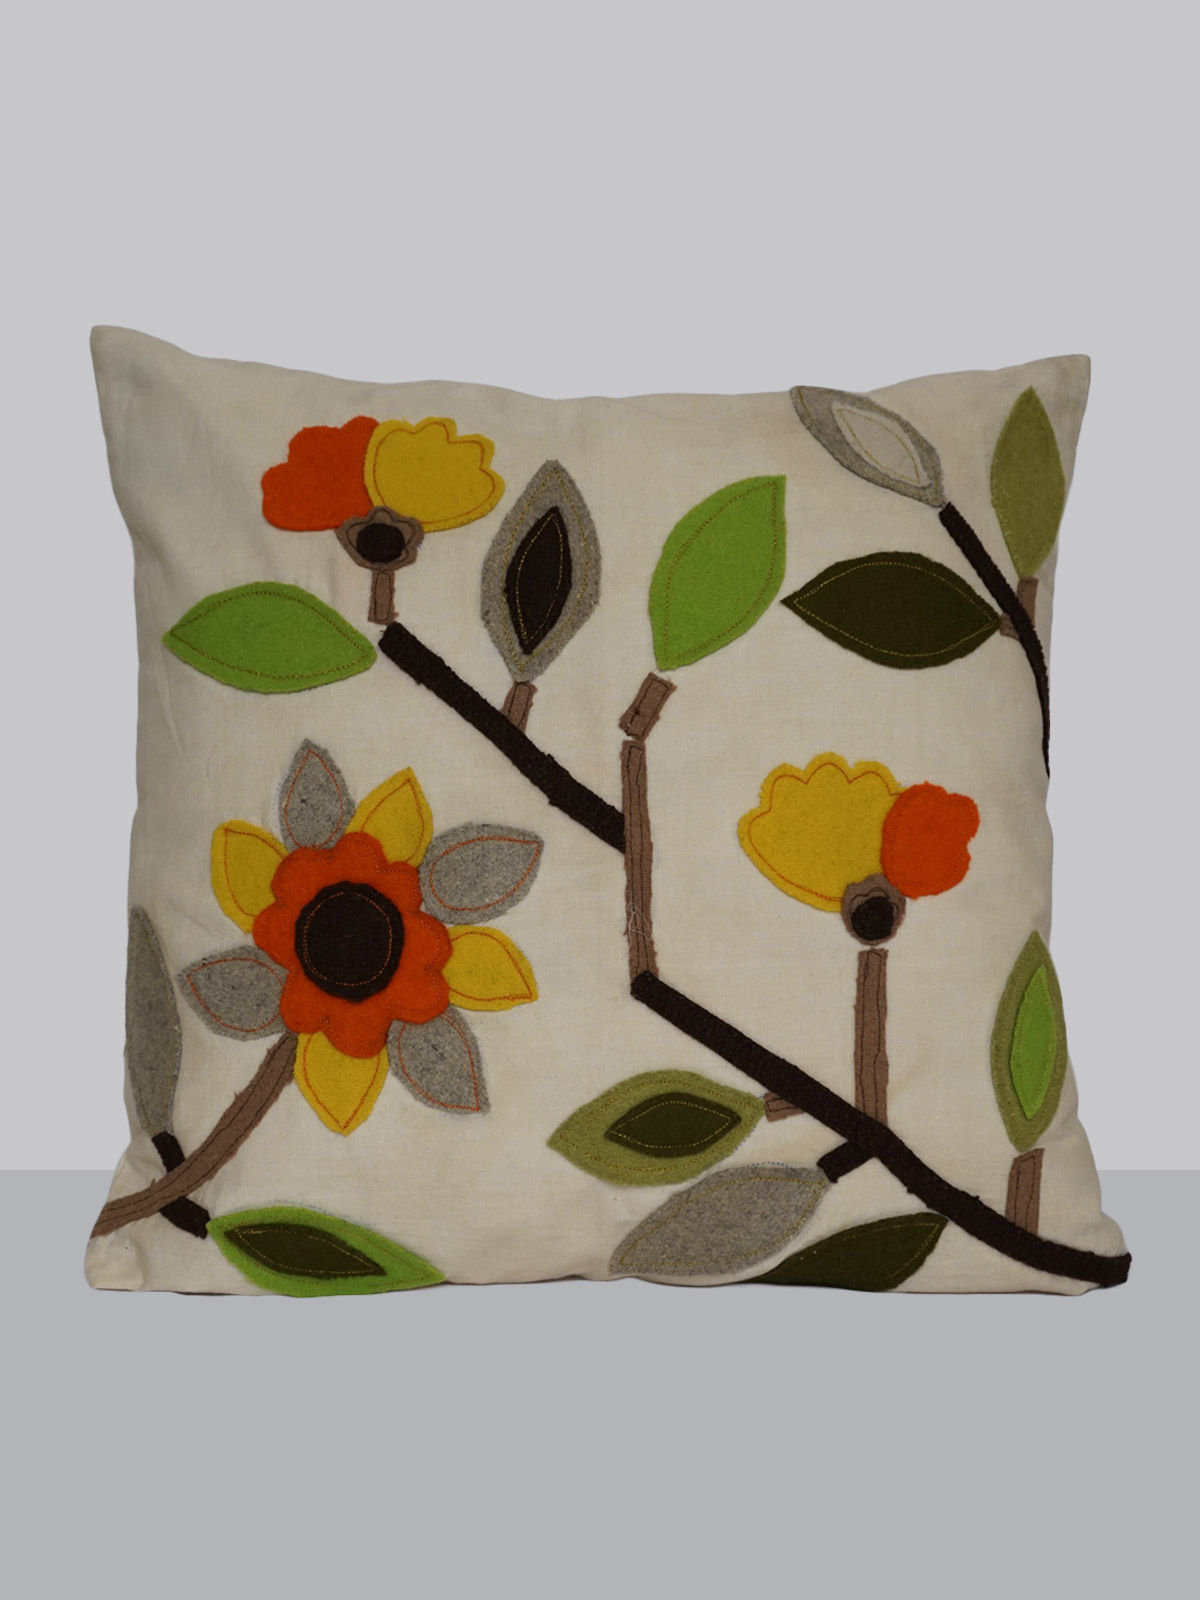 Off-white felt patchwork multicolored flower pattern emroidered cotton cushion cover